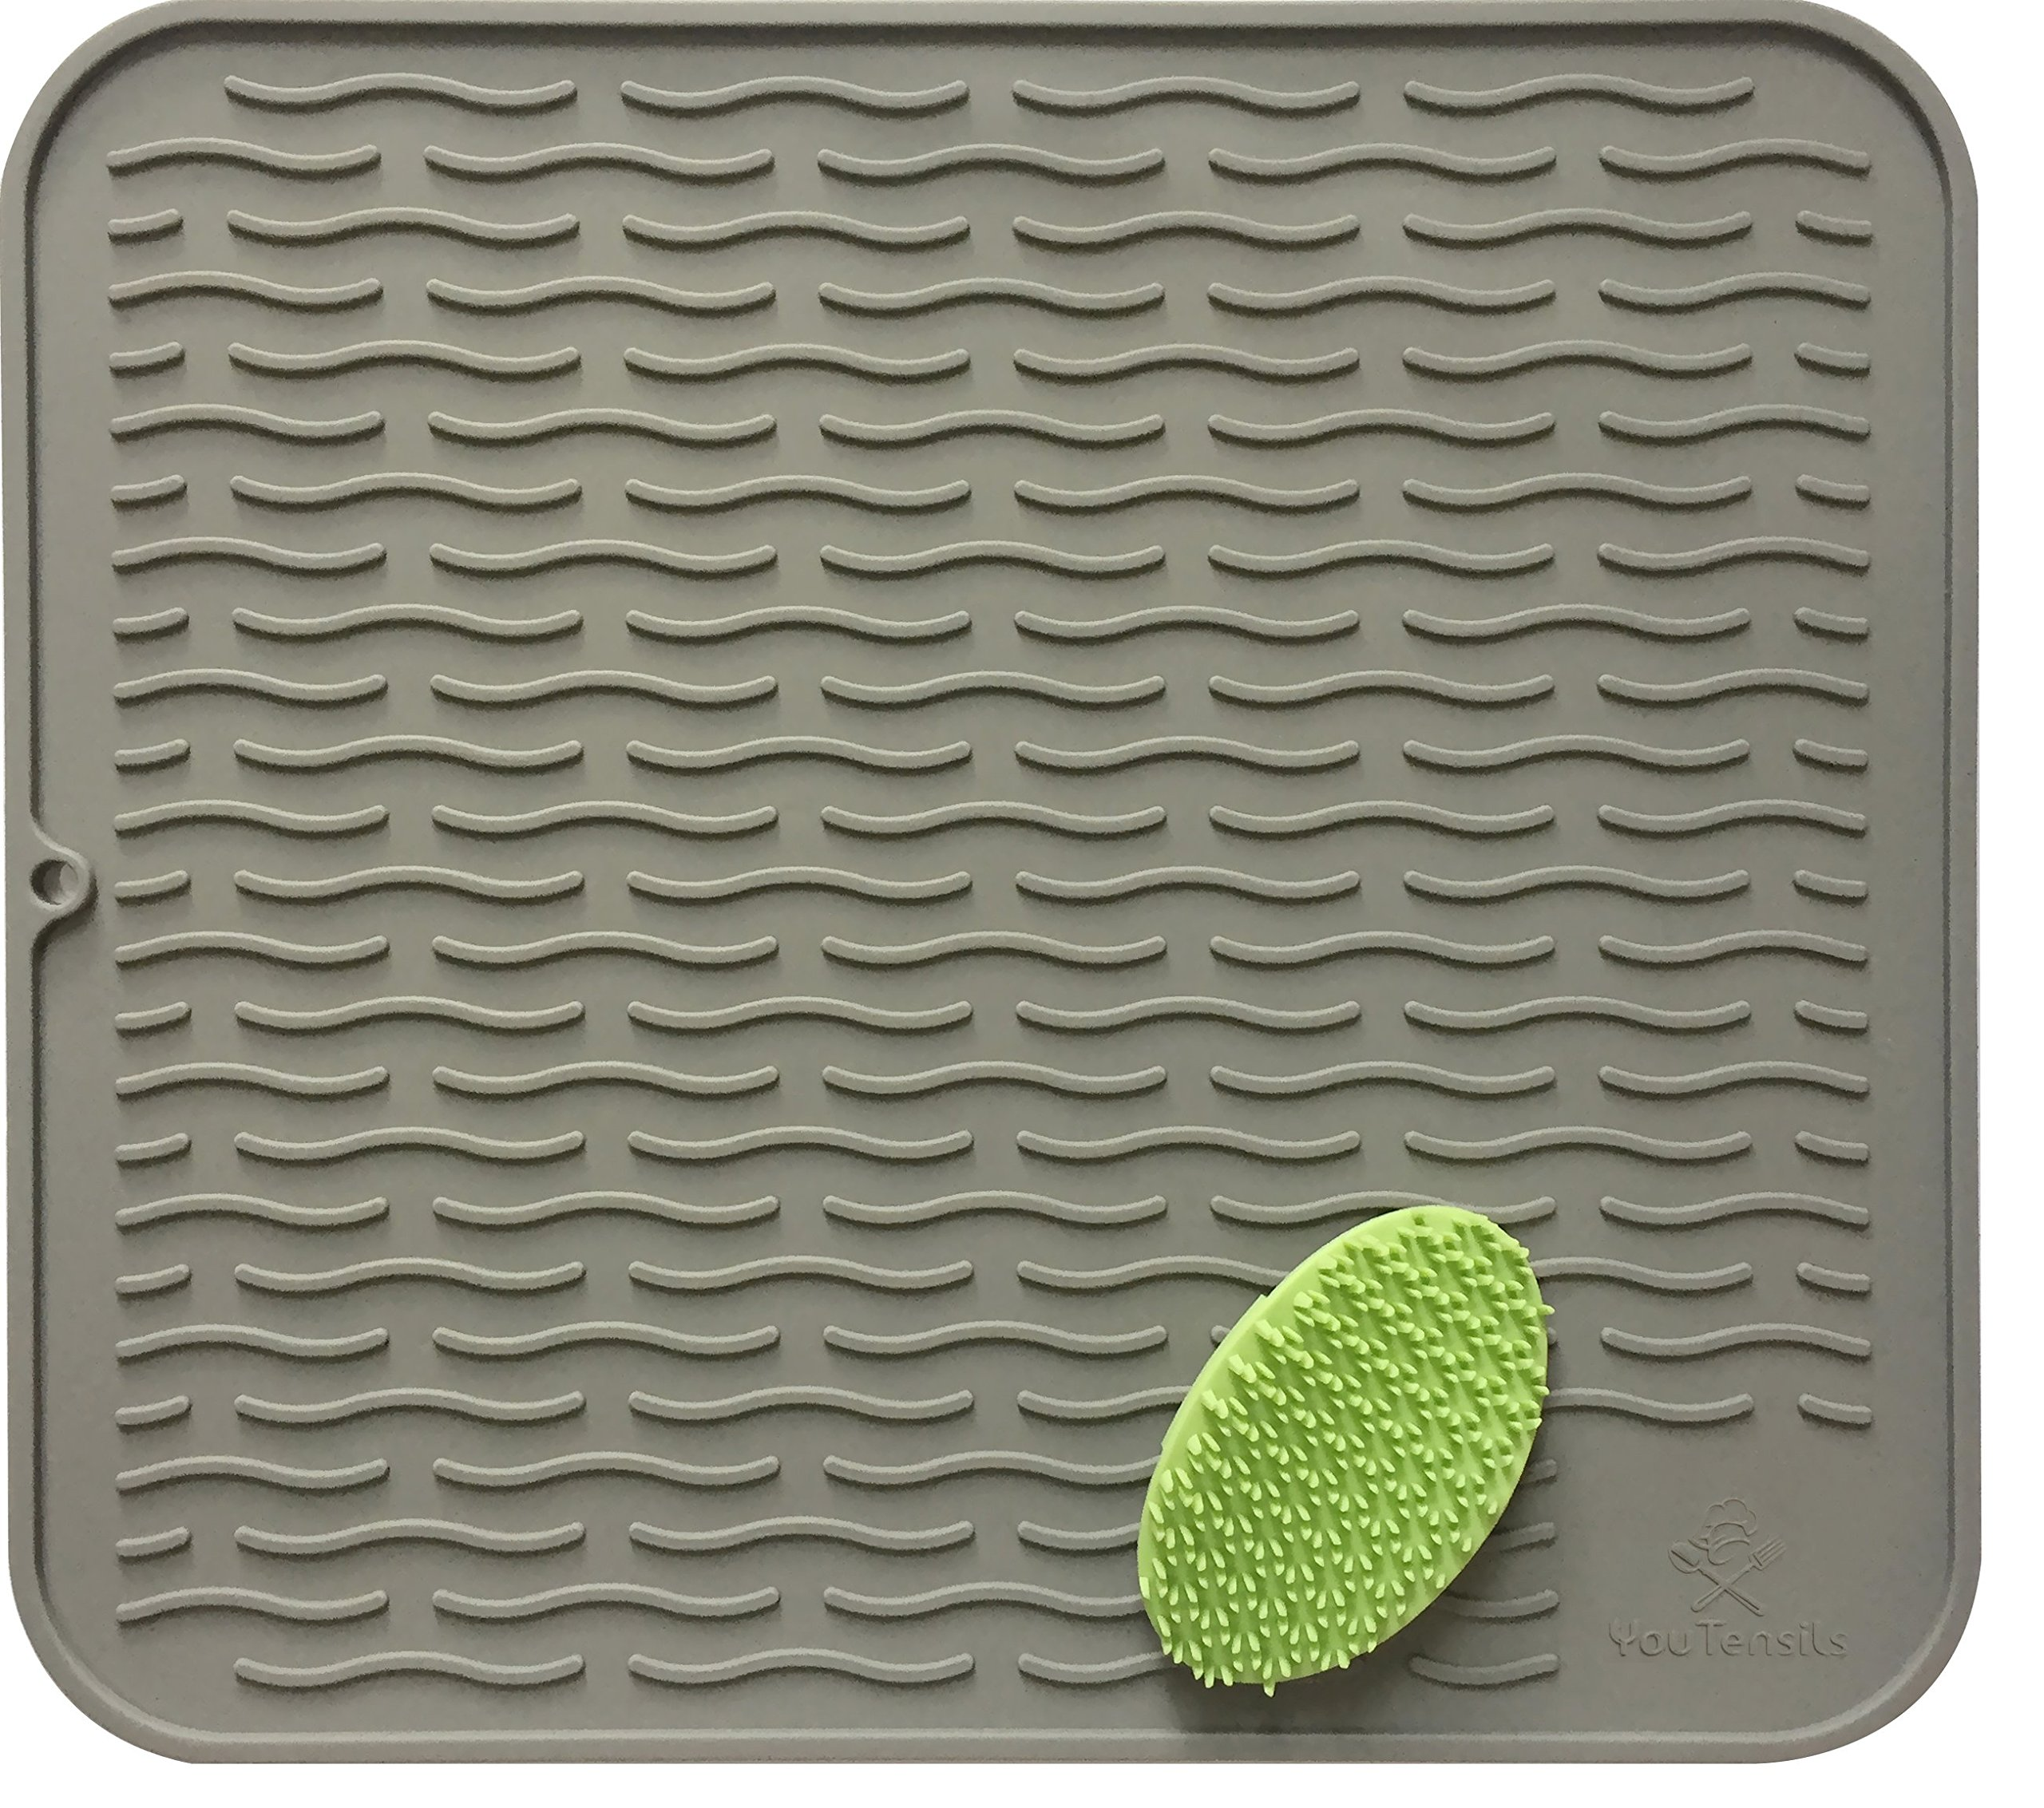 Silicone Dish Drying Mat & Scrubber | Kitchen Dish Drainer Mats & Trivet | Food Safe Fast Draining Pad for Dishes | 17.8'' x 15.8'' (XL, Grey) | Other Sizes and Colors Available